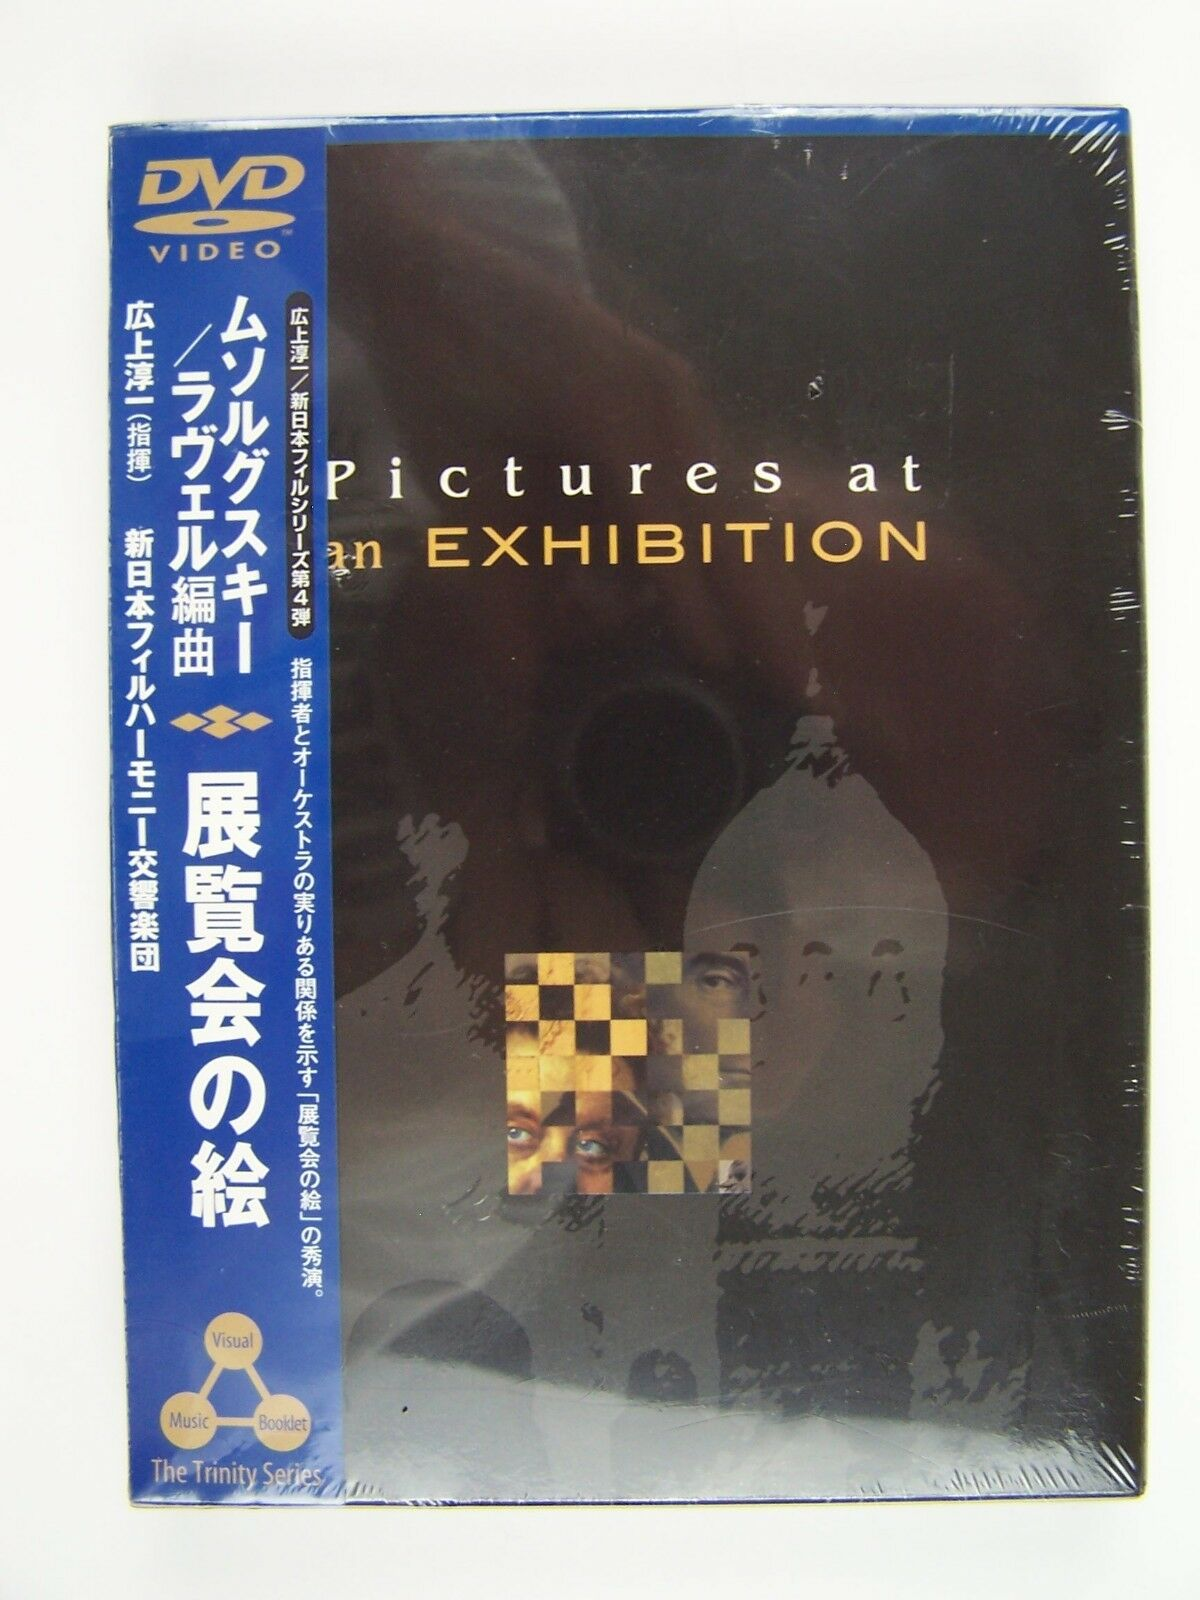 The Trinity Series DVD Video: Pictures At An Exhibition